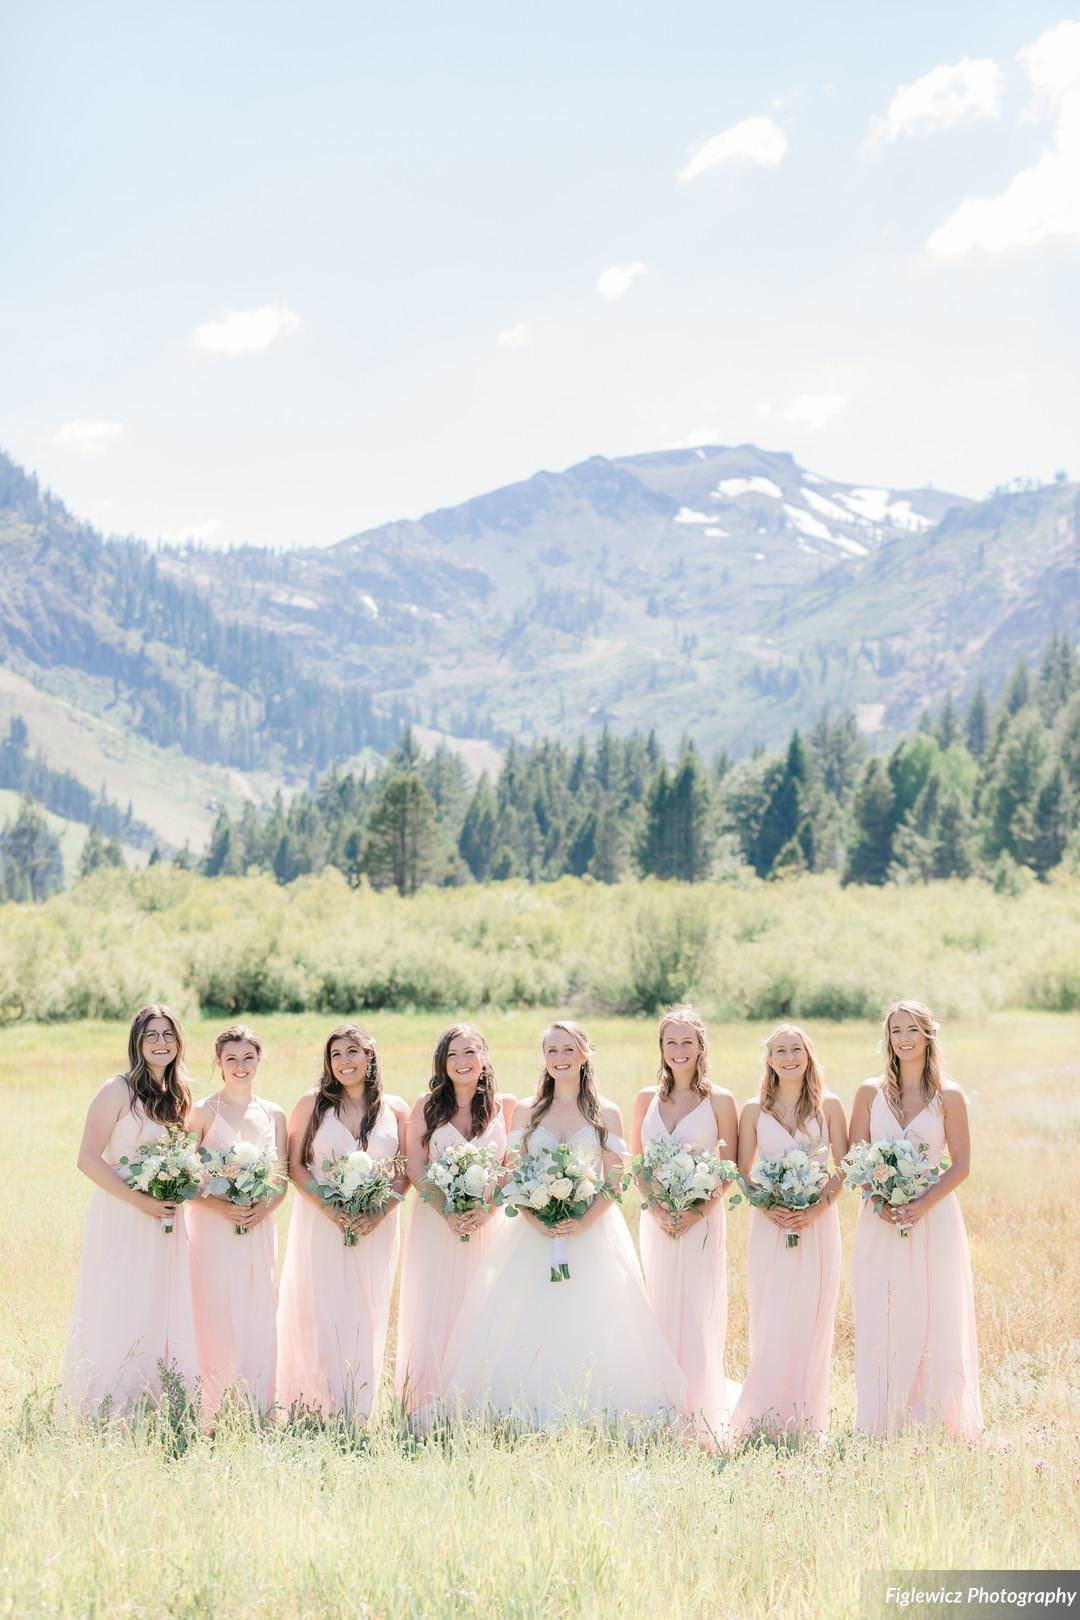 Garden_Tinsley_FiglewiczPhotography_LakeTahoeWeddingSquawValleyCreekTaylorBrendan00043_big